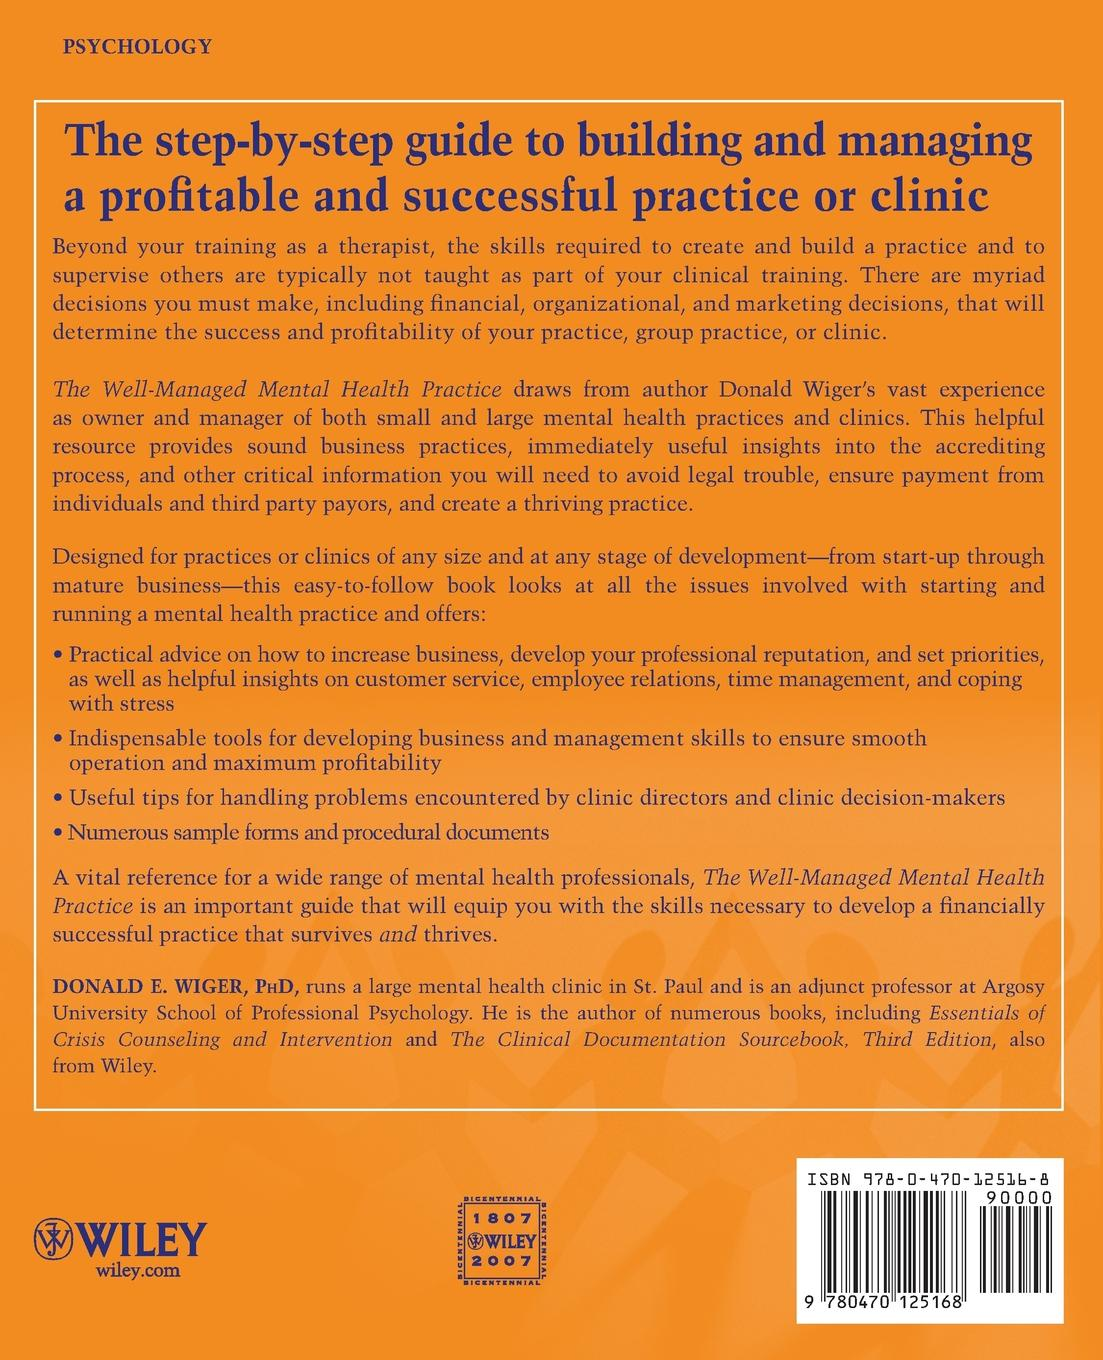 Donald E. Wiger The Well-Managed Mental Health Practice. Your Guide to Building and Managing a Successful Practice, Group, or Clinic